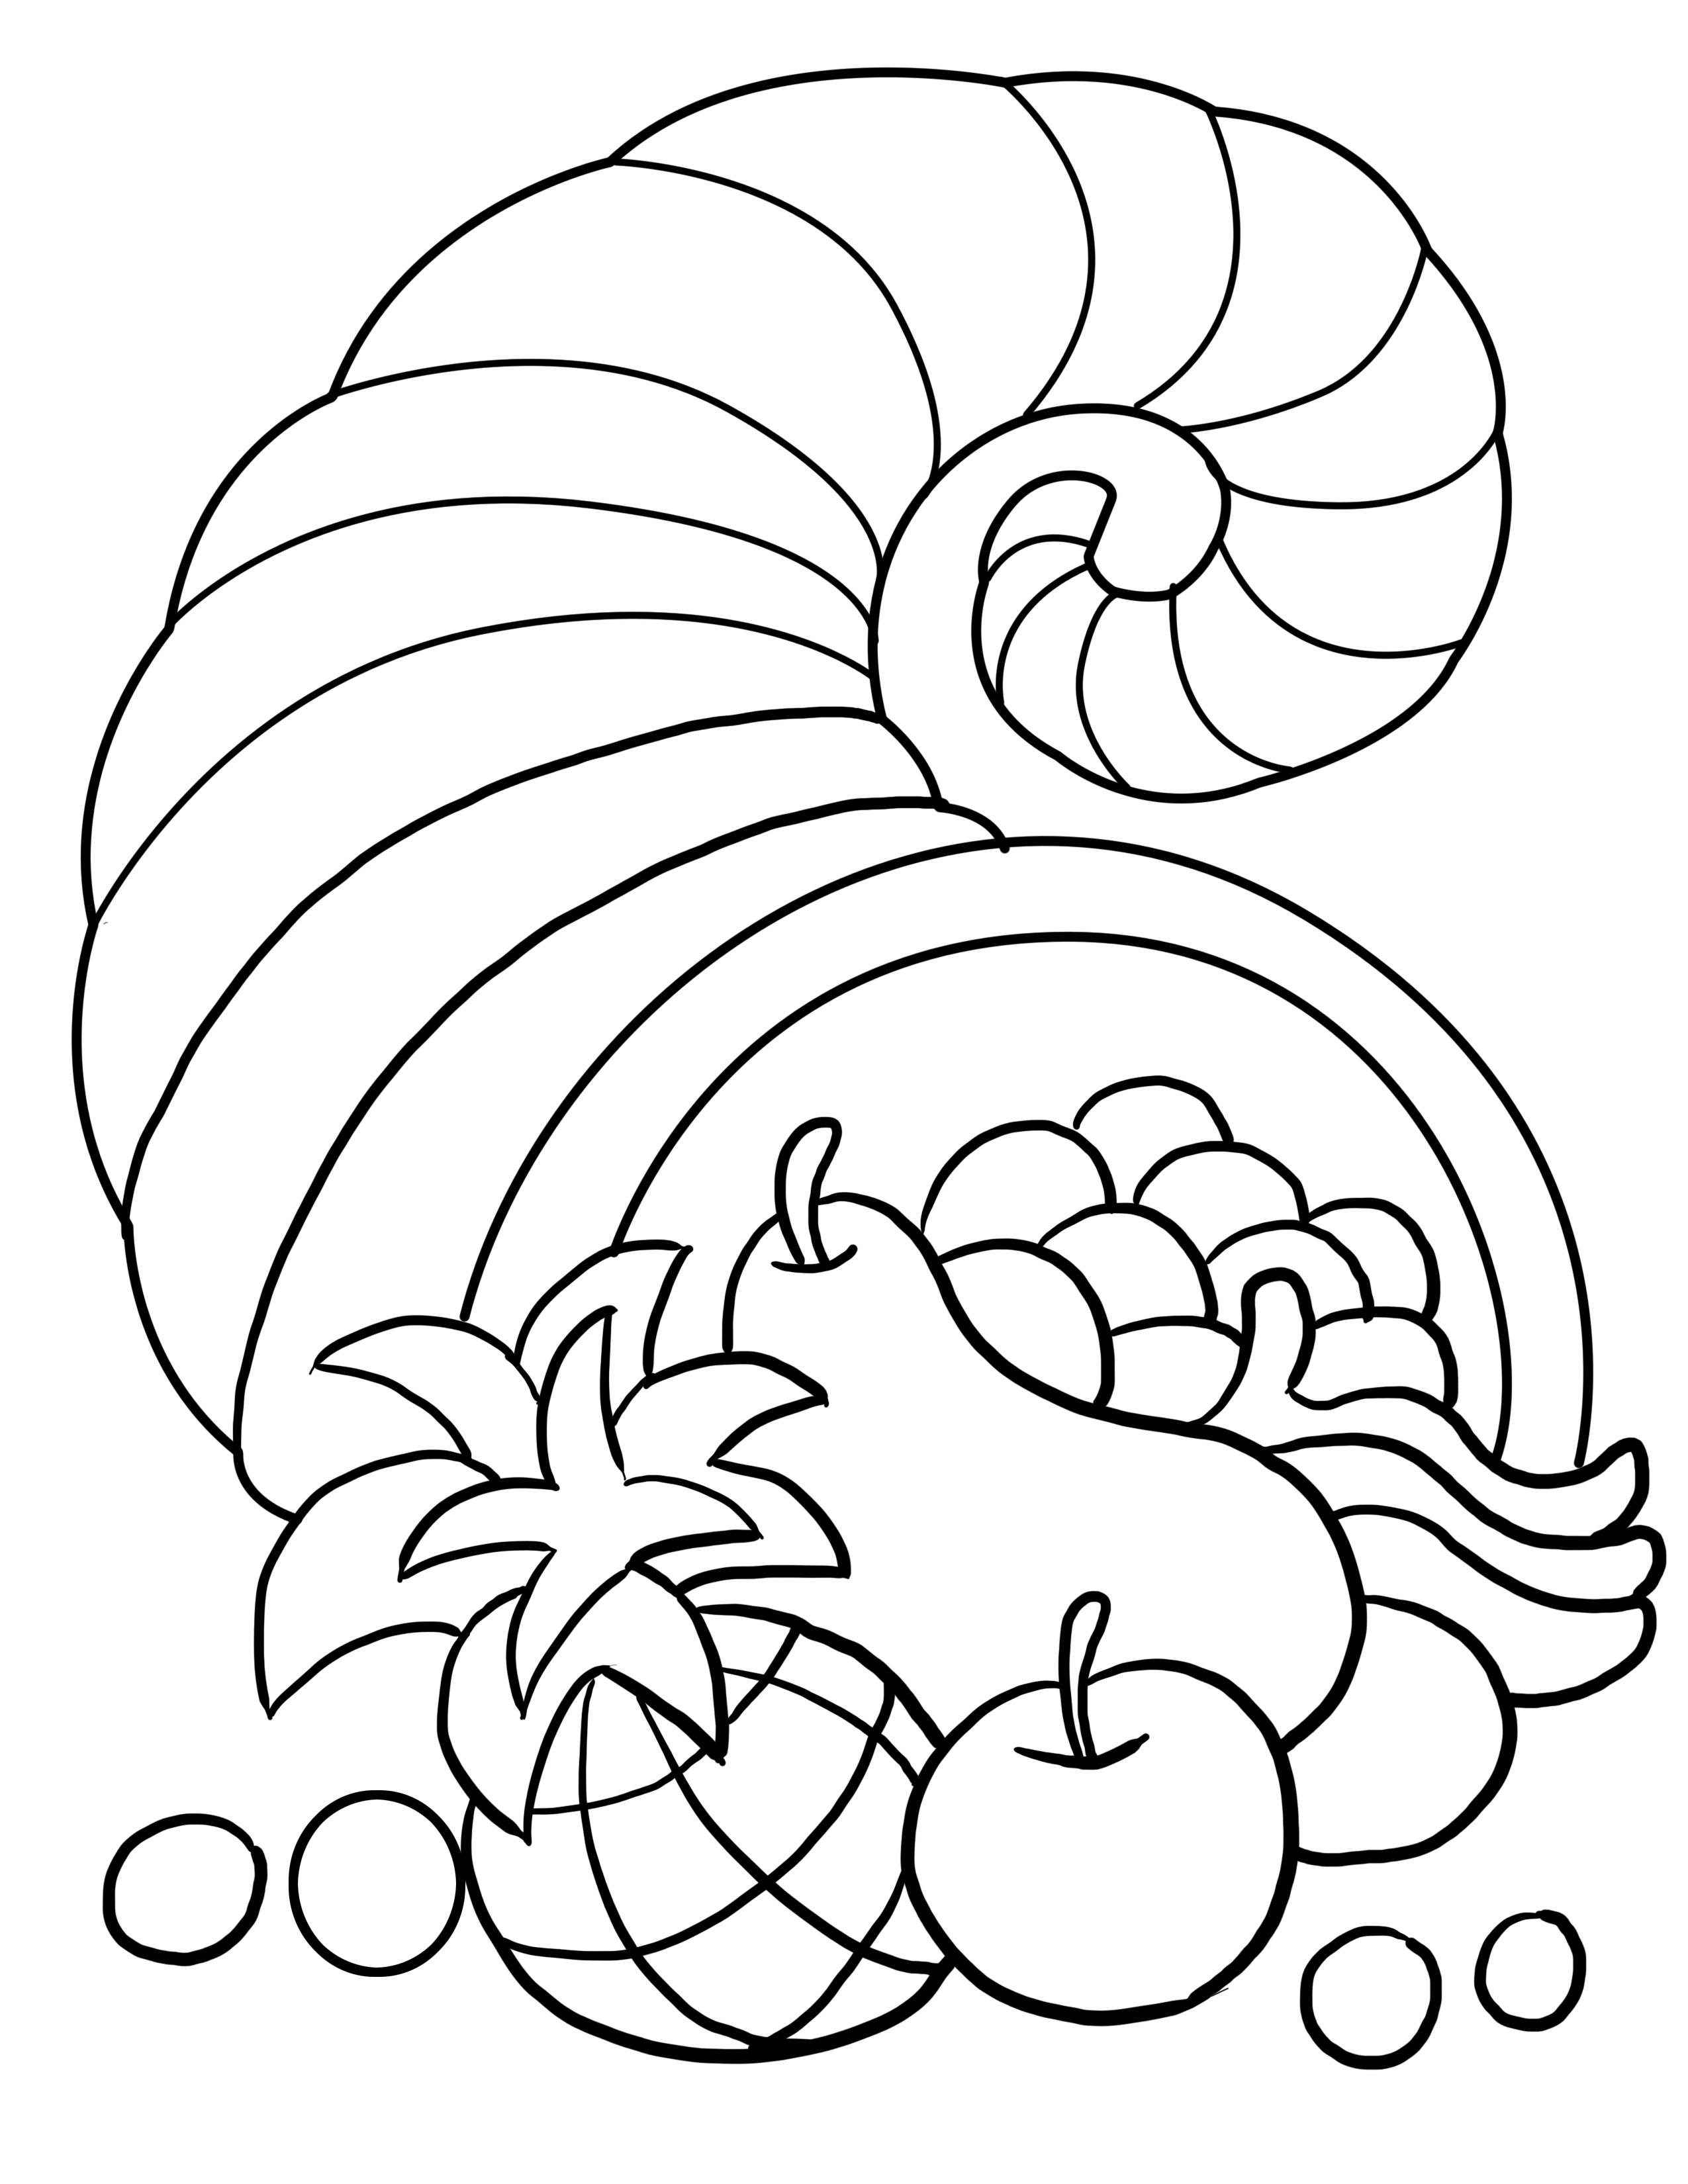 Thanksgiving Coloring Pages | Pinterest | Thanksgiving cornucopia ...